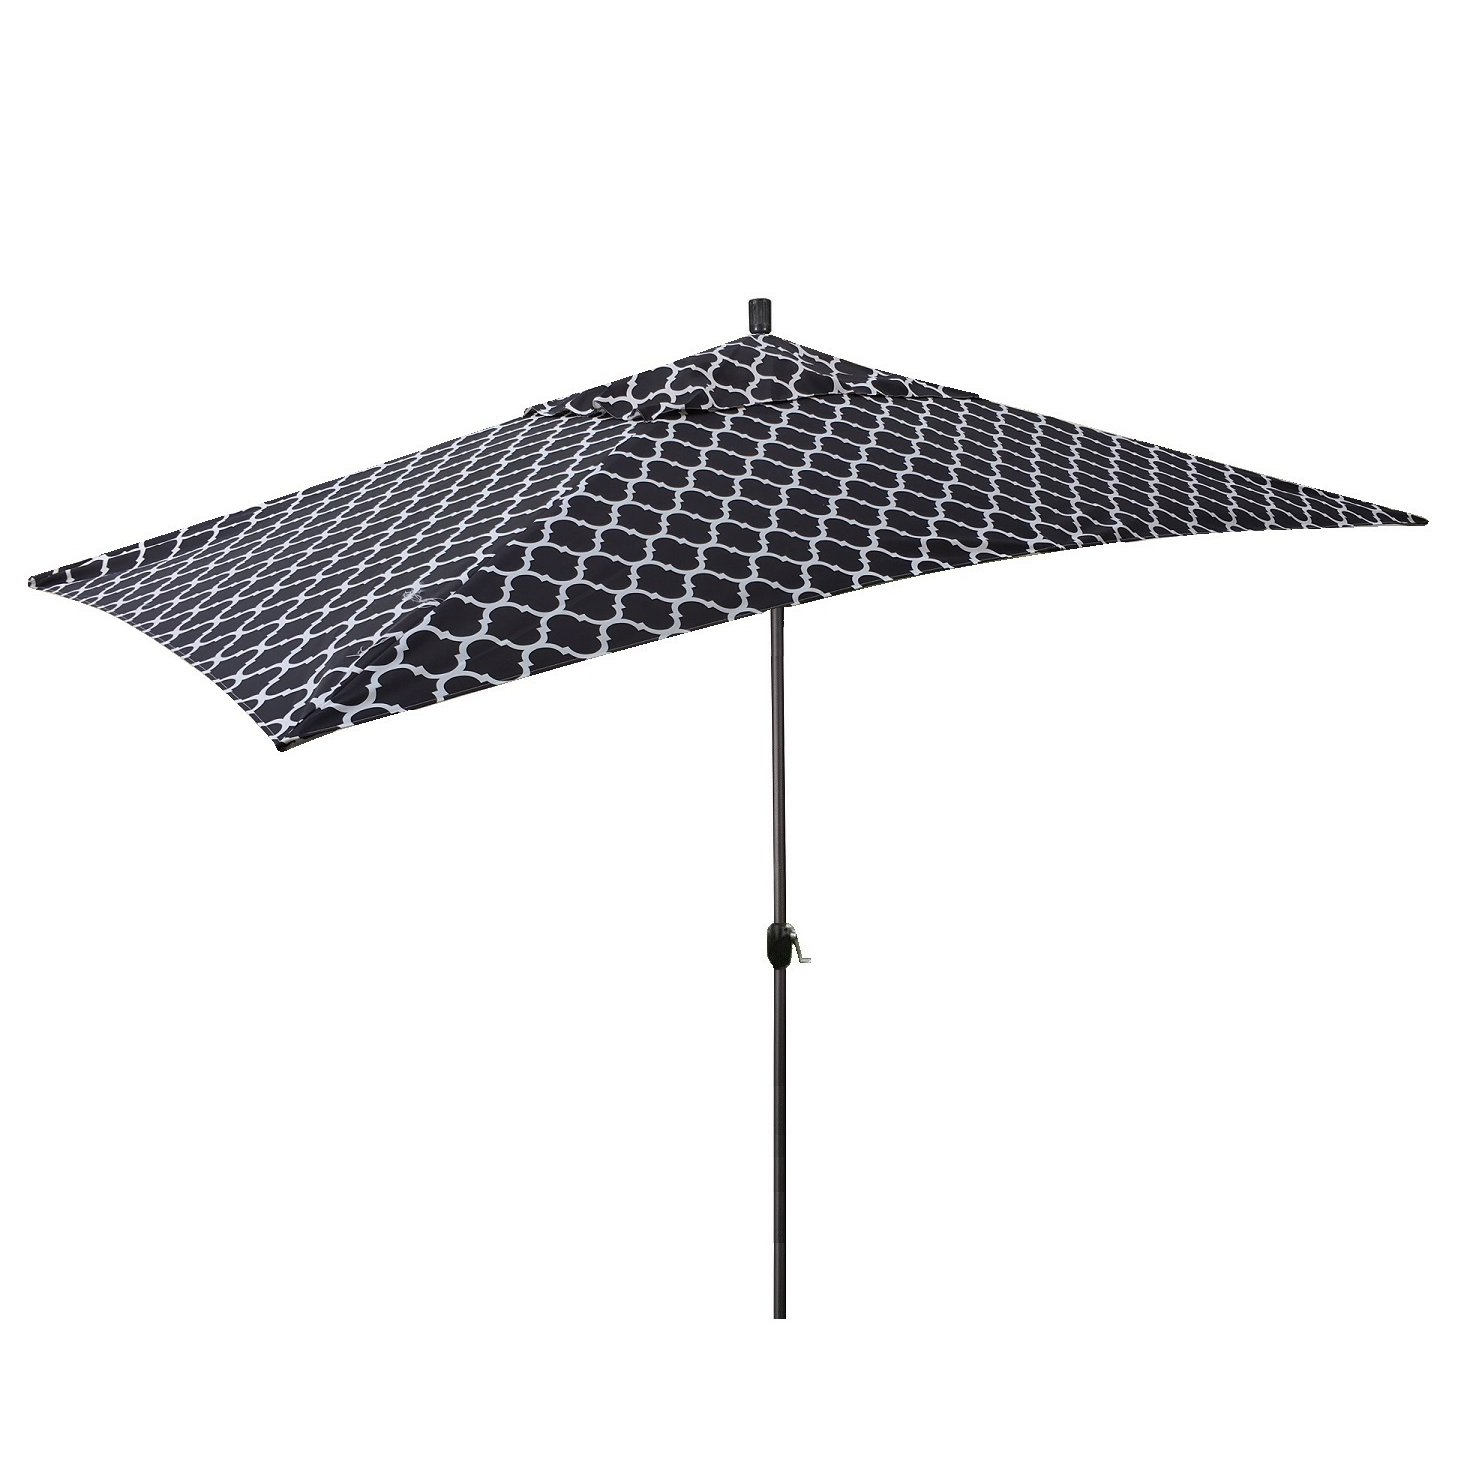 Preferred Fordbridge Rectangular Market Umbrellas Throughout Sherlyn 10' X 6' Rectangular Market Umbrella (View 6 of 20)